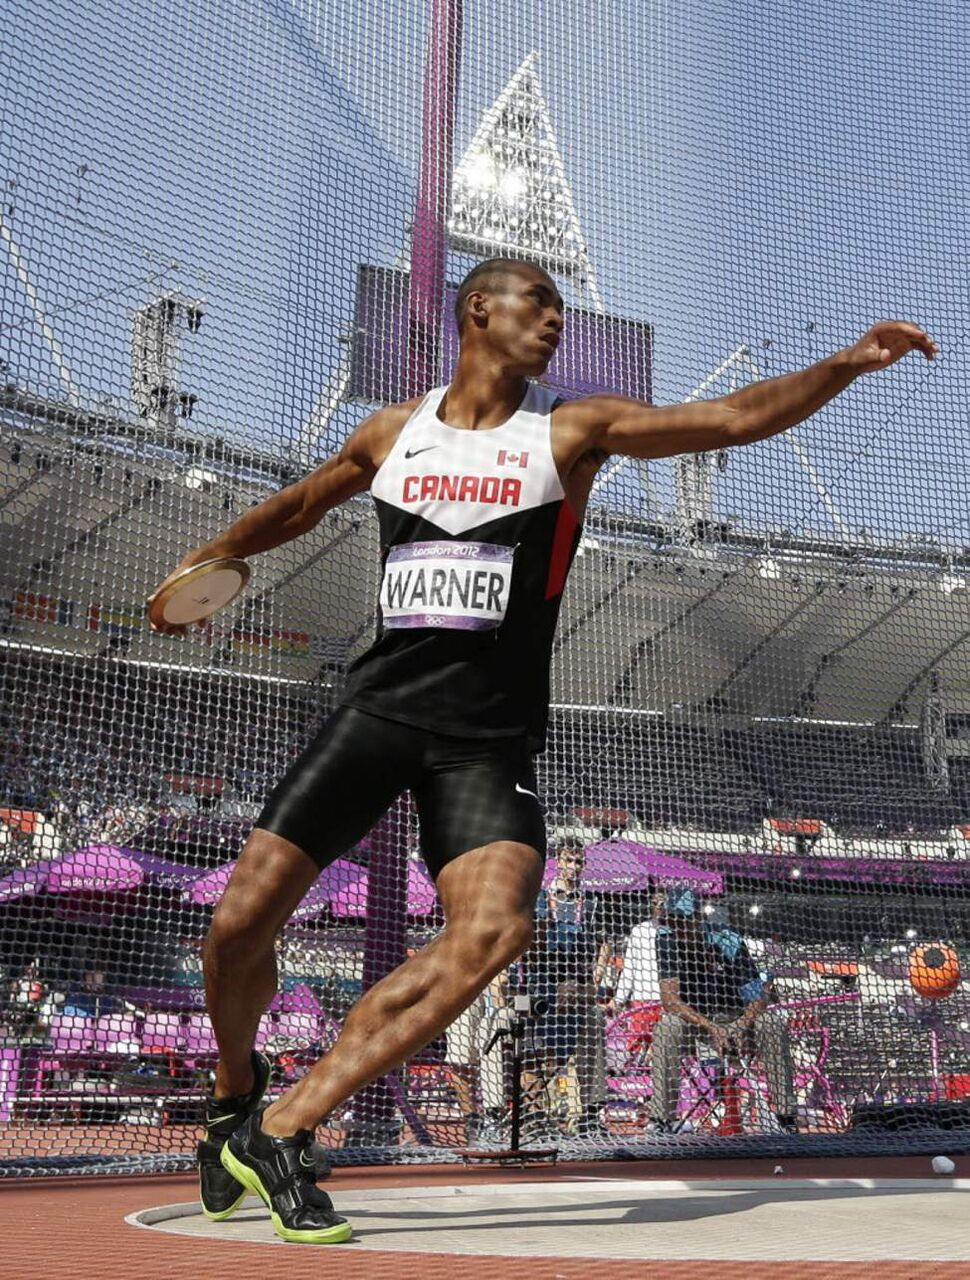 Canada's Damian Warner takes a throw in the discus throw for the decathlon in the Olympic Stadium at the 2012 Summer Olympics. (AP Photo/David J. Phillip)